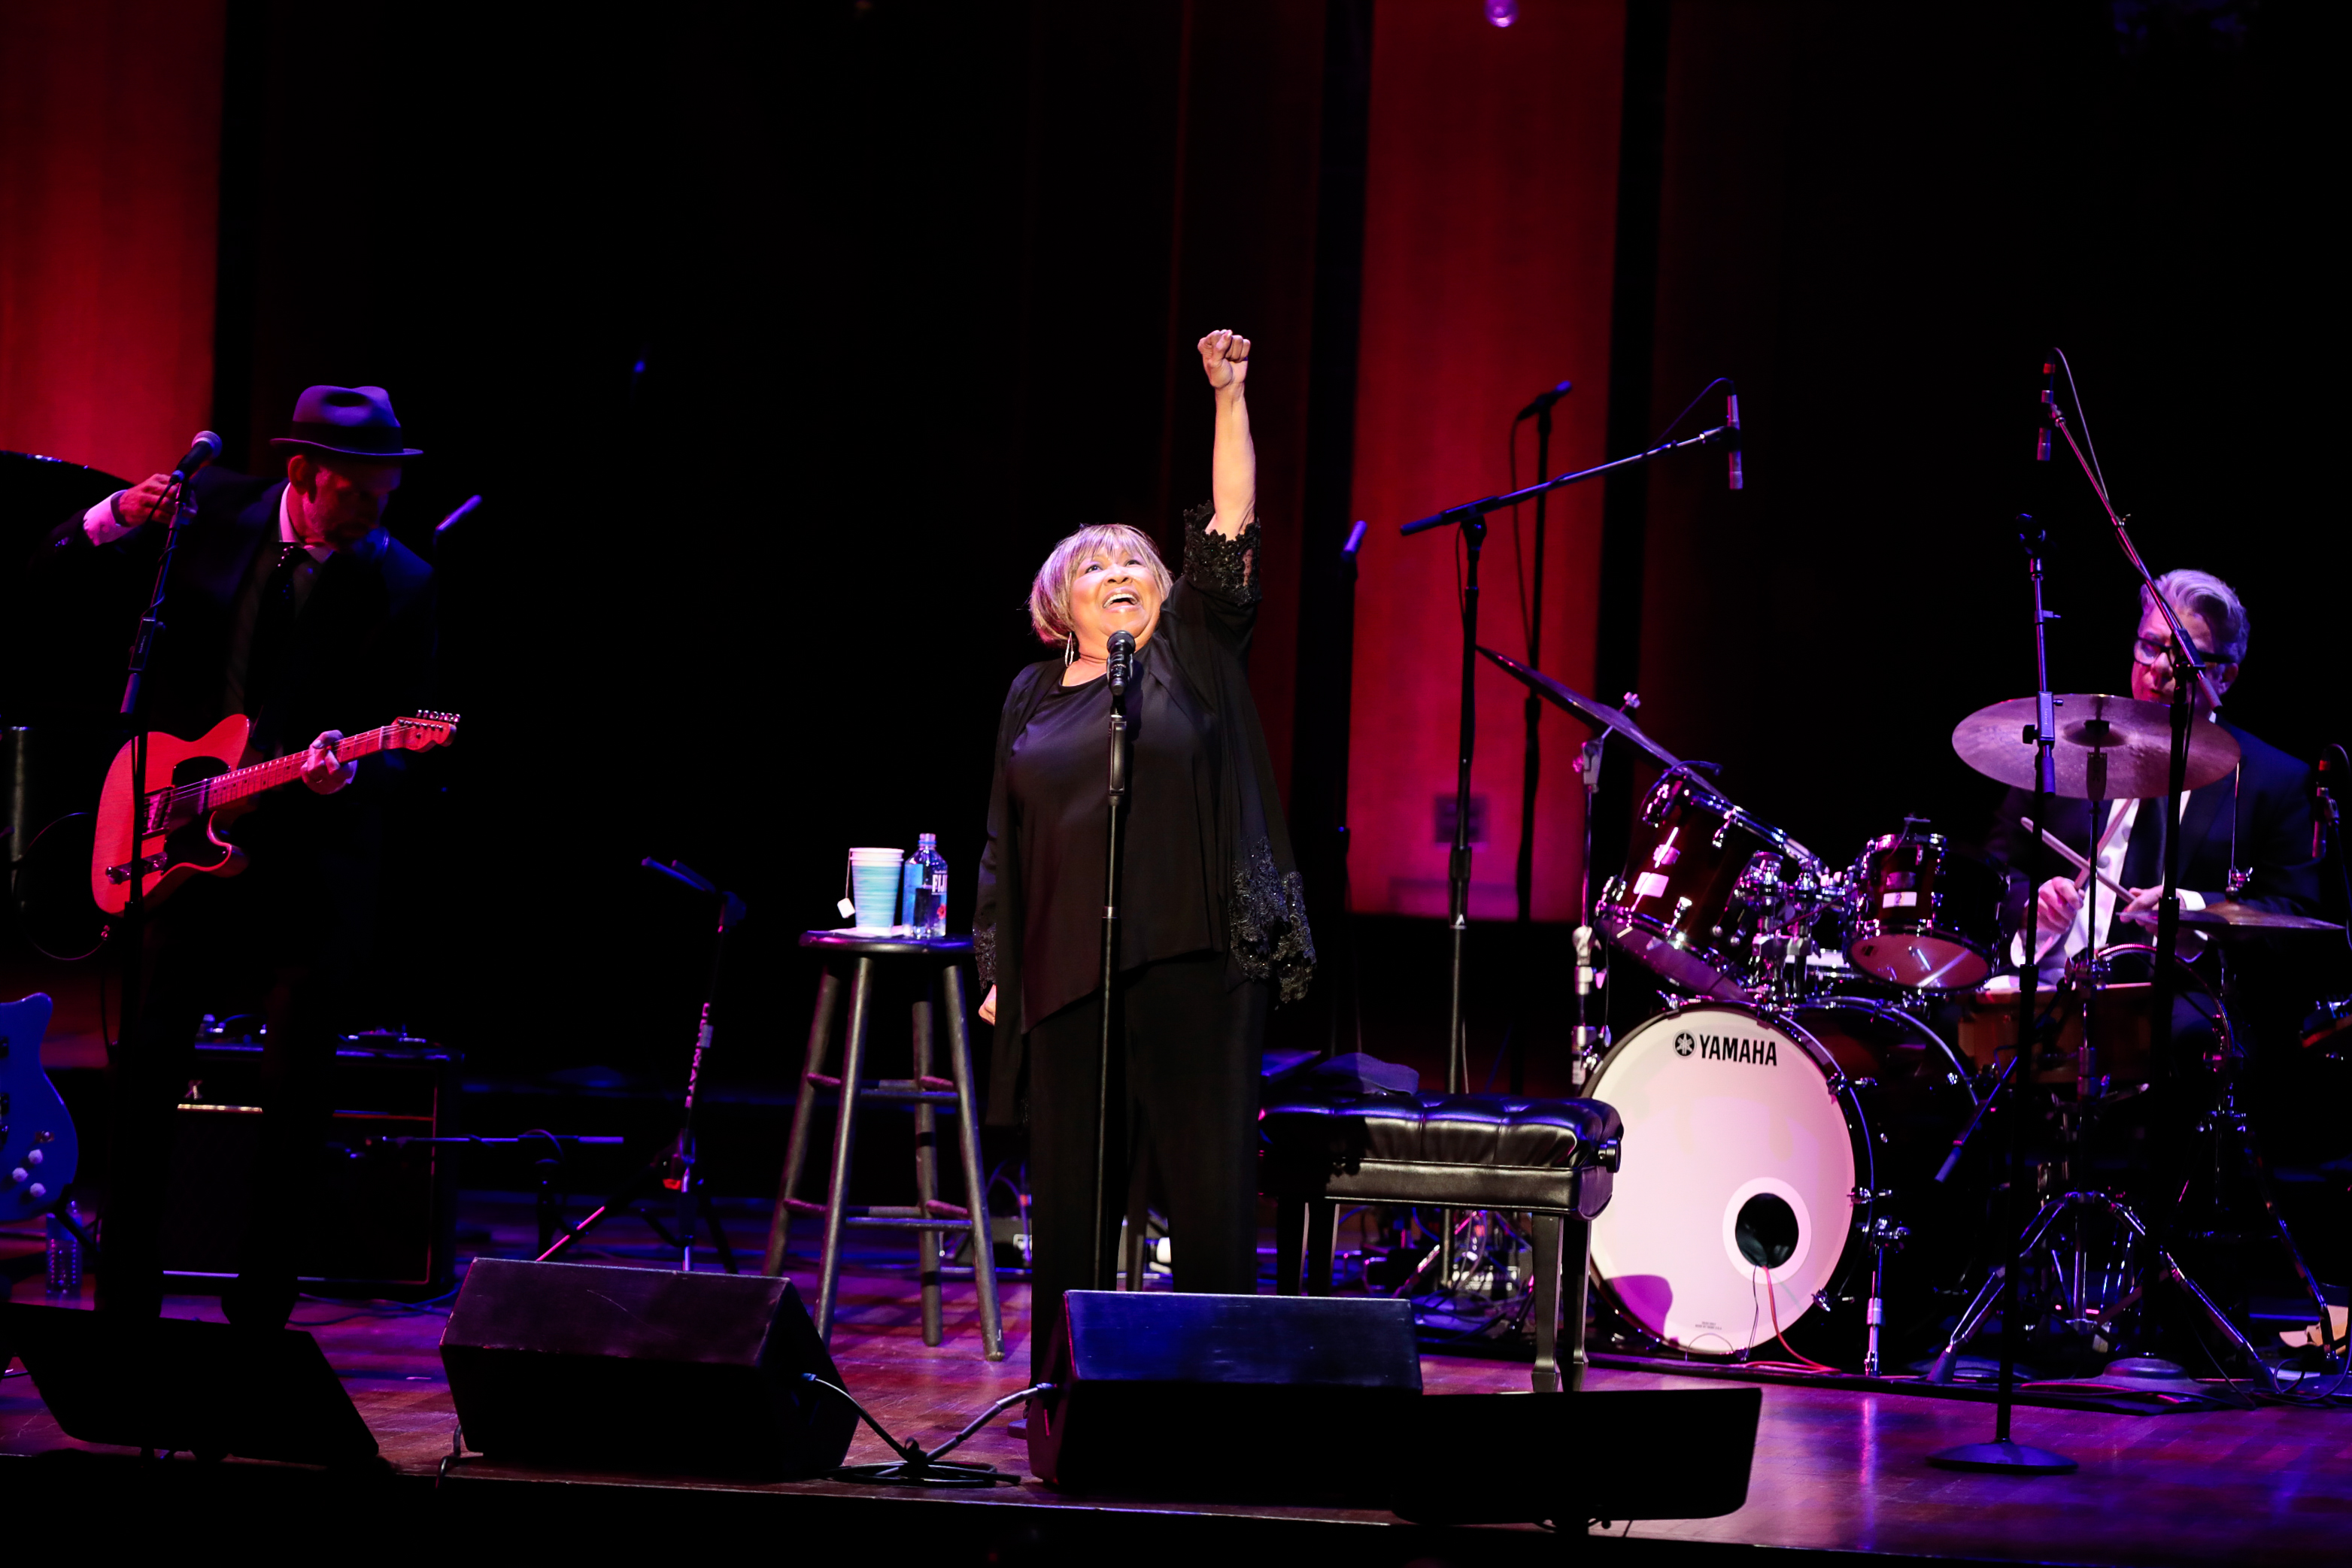 The Kennedy Center hosted their 2018 Spring Gala Concert on May 6, with a delightful performance from the legendary Mavis Staples. (Image: Yassine El Mansouri for the Kennedy Center)